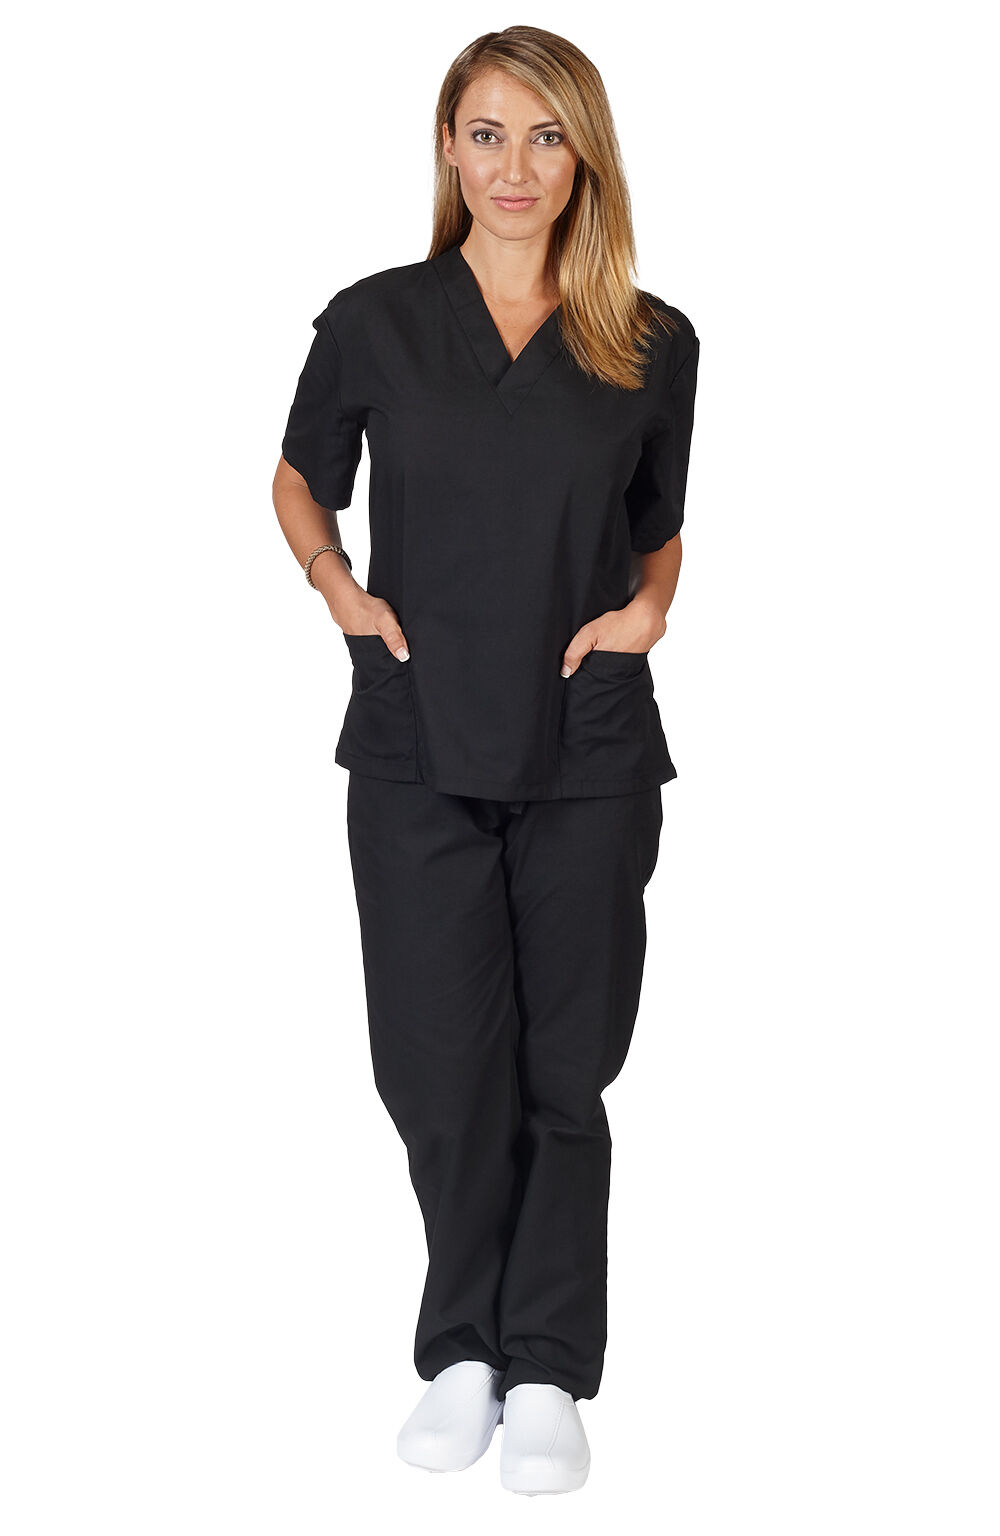 d67f22cfe68 Unisex Medical Nursing Uniform 2 Pocket Clinic Hospital Scrubs Top ...